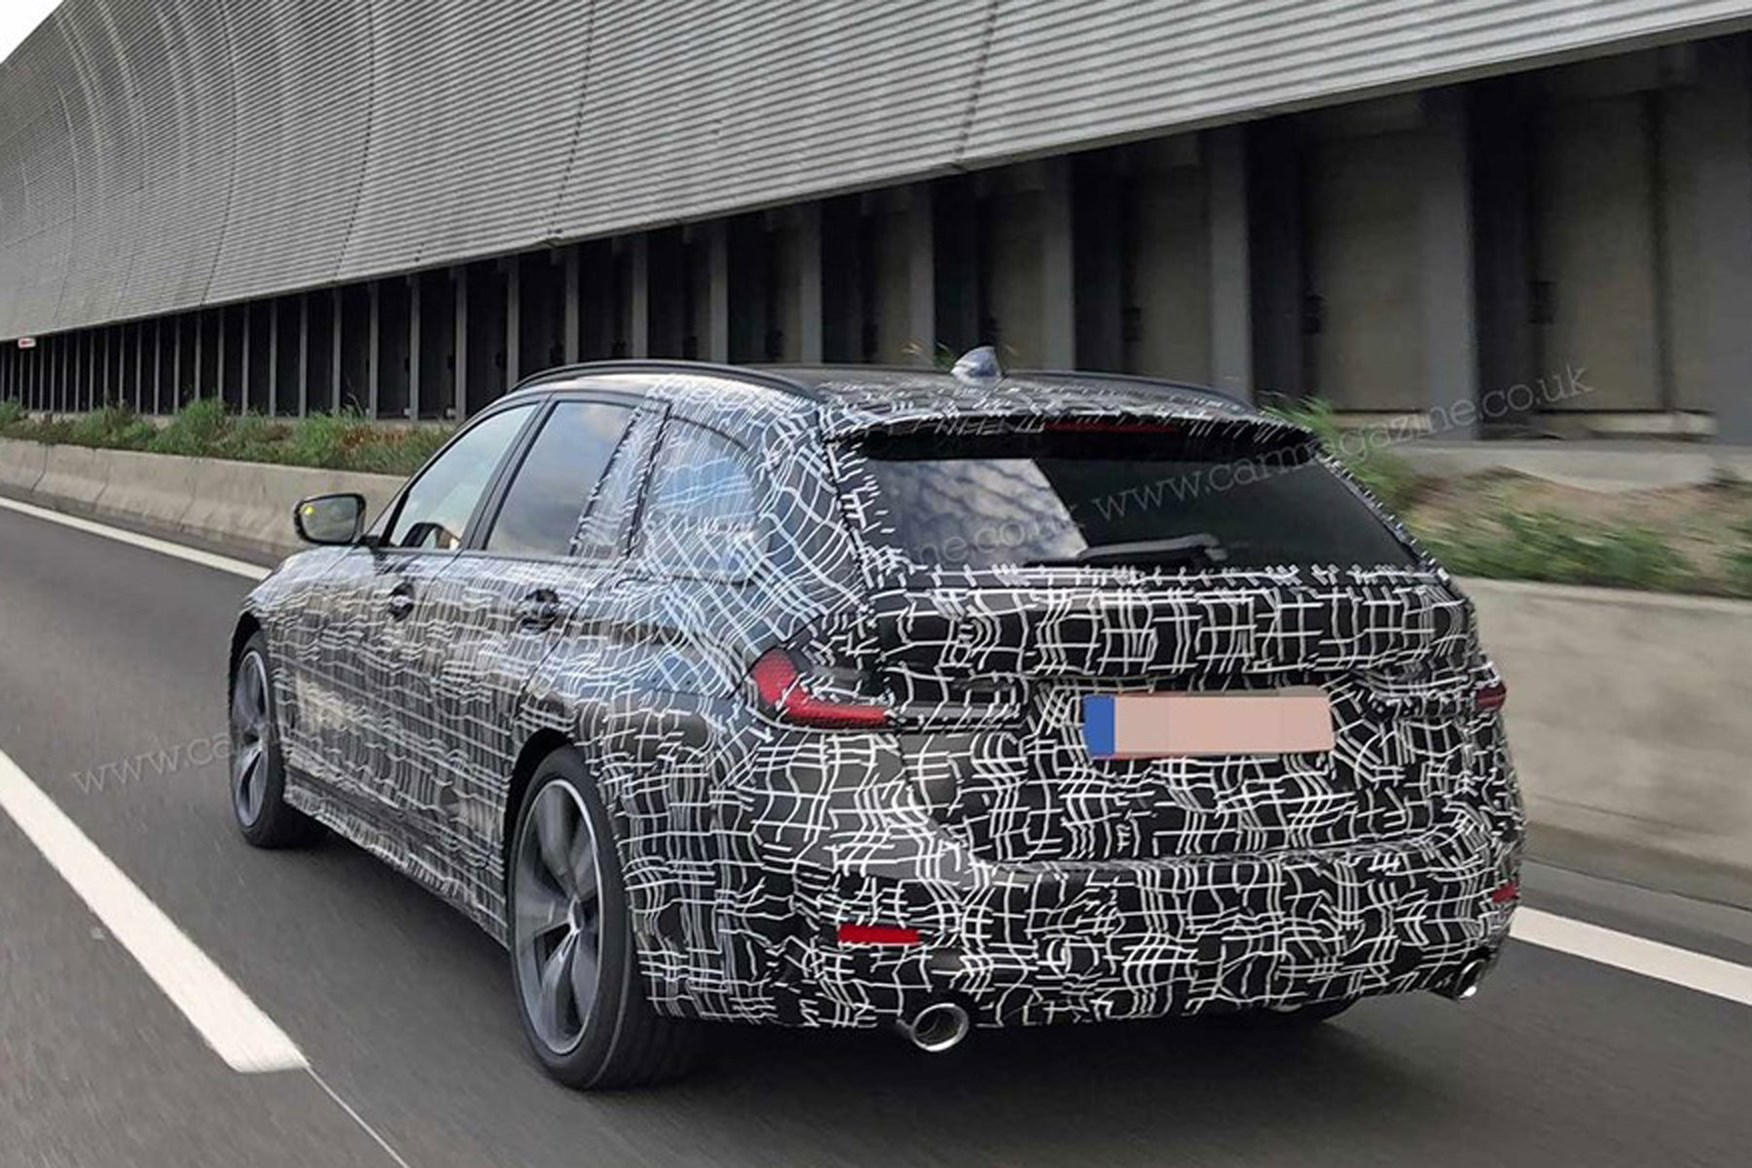 BMW 3 Series Touring 2020 from CAR magazine